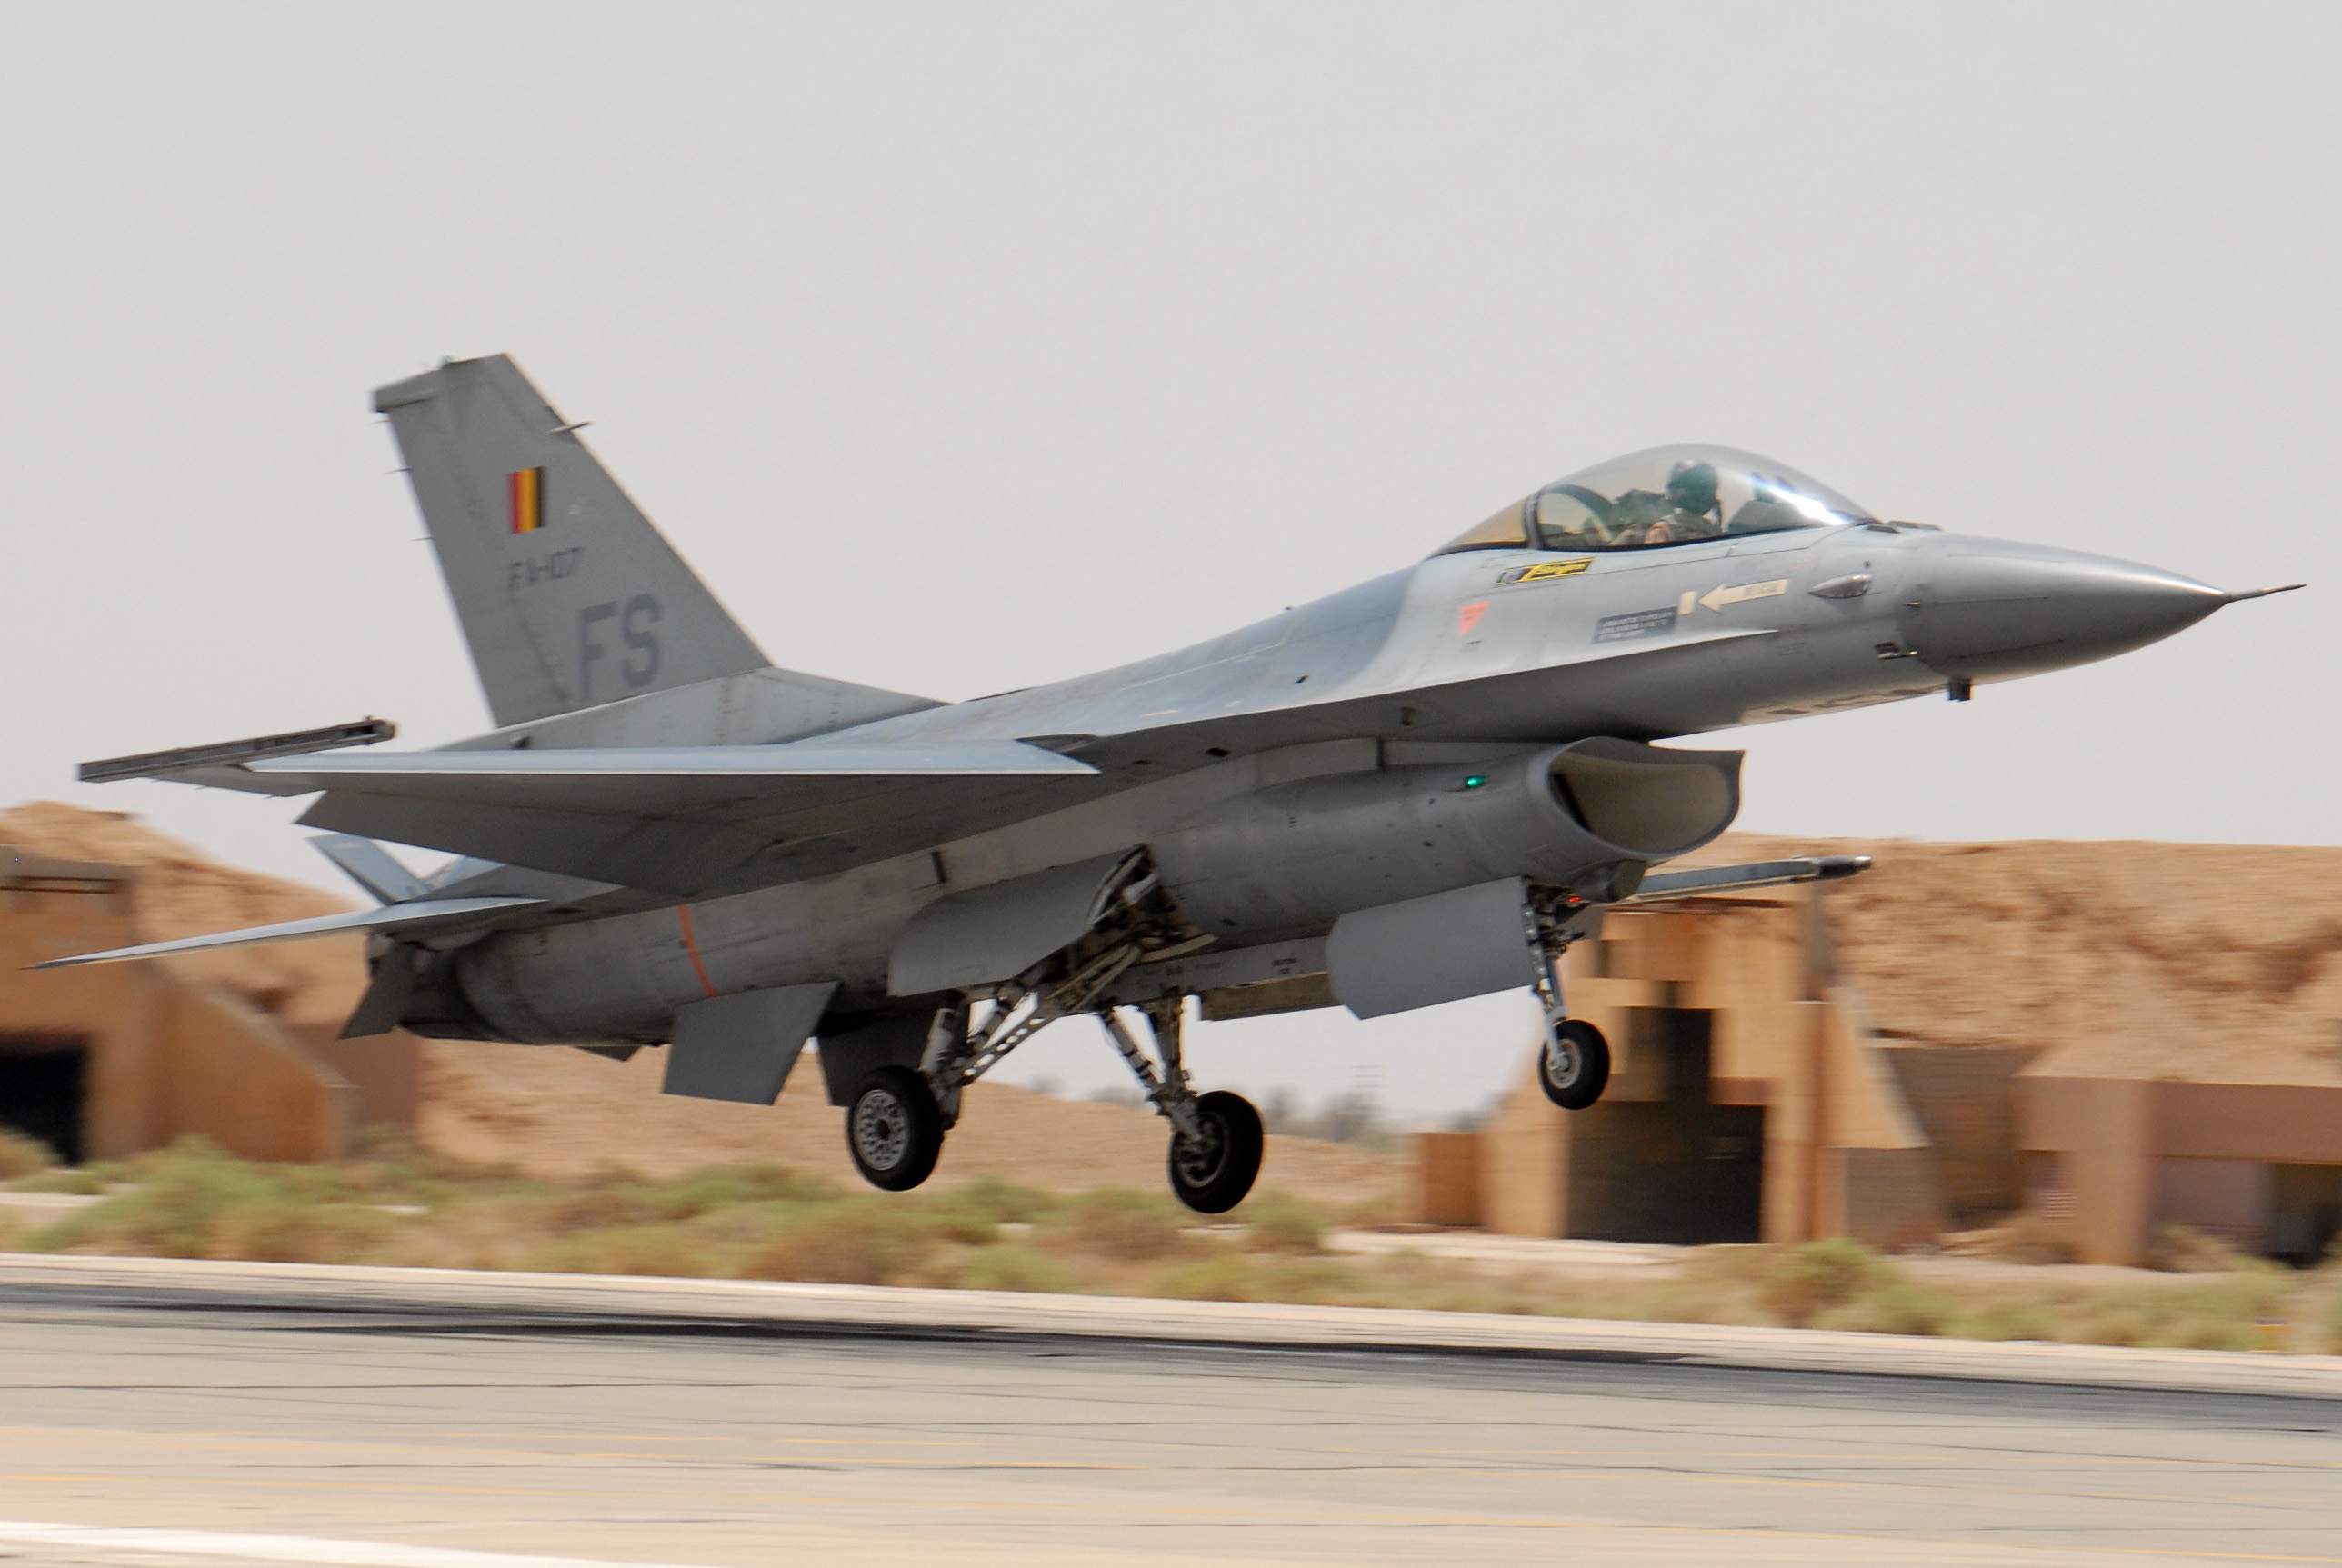 Belgian F 16 at 2007 Falcon Air Meet in Azraq